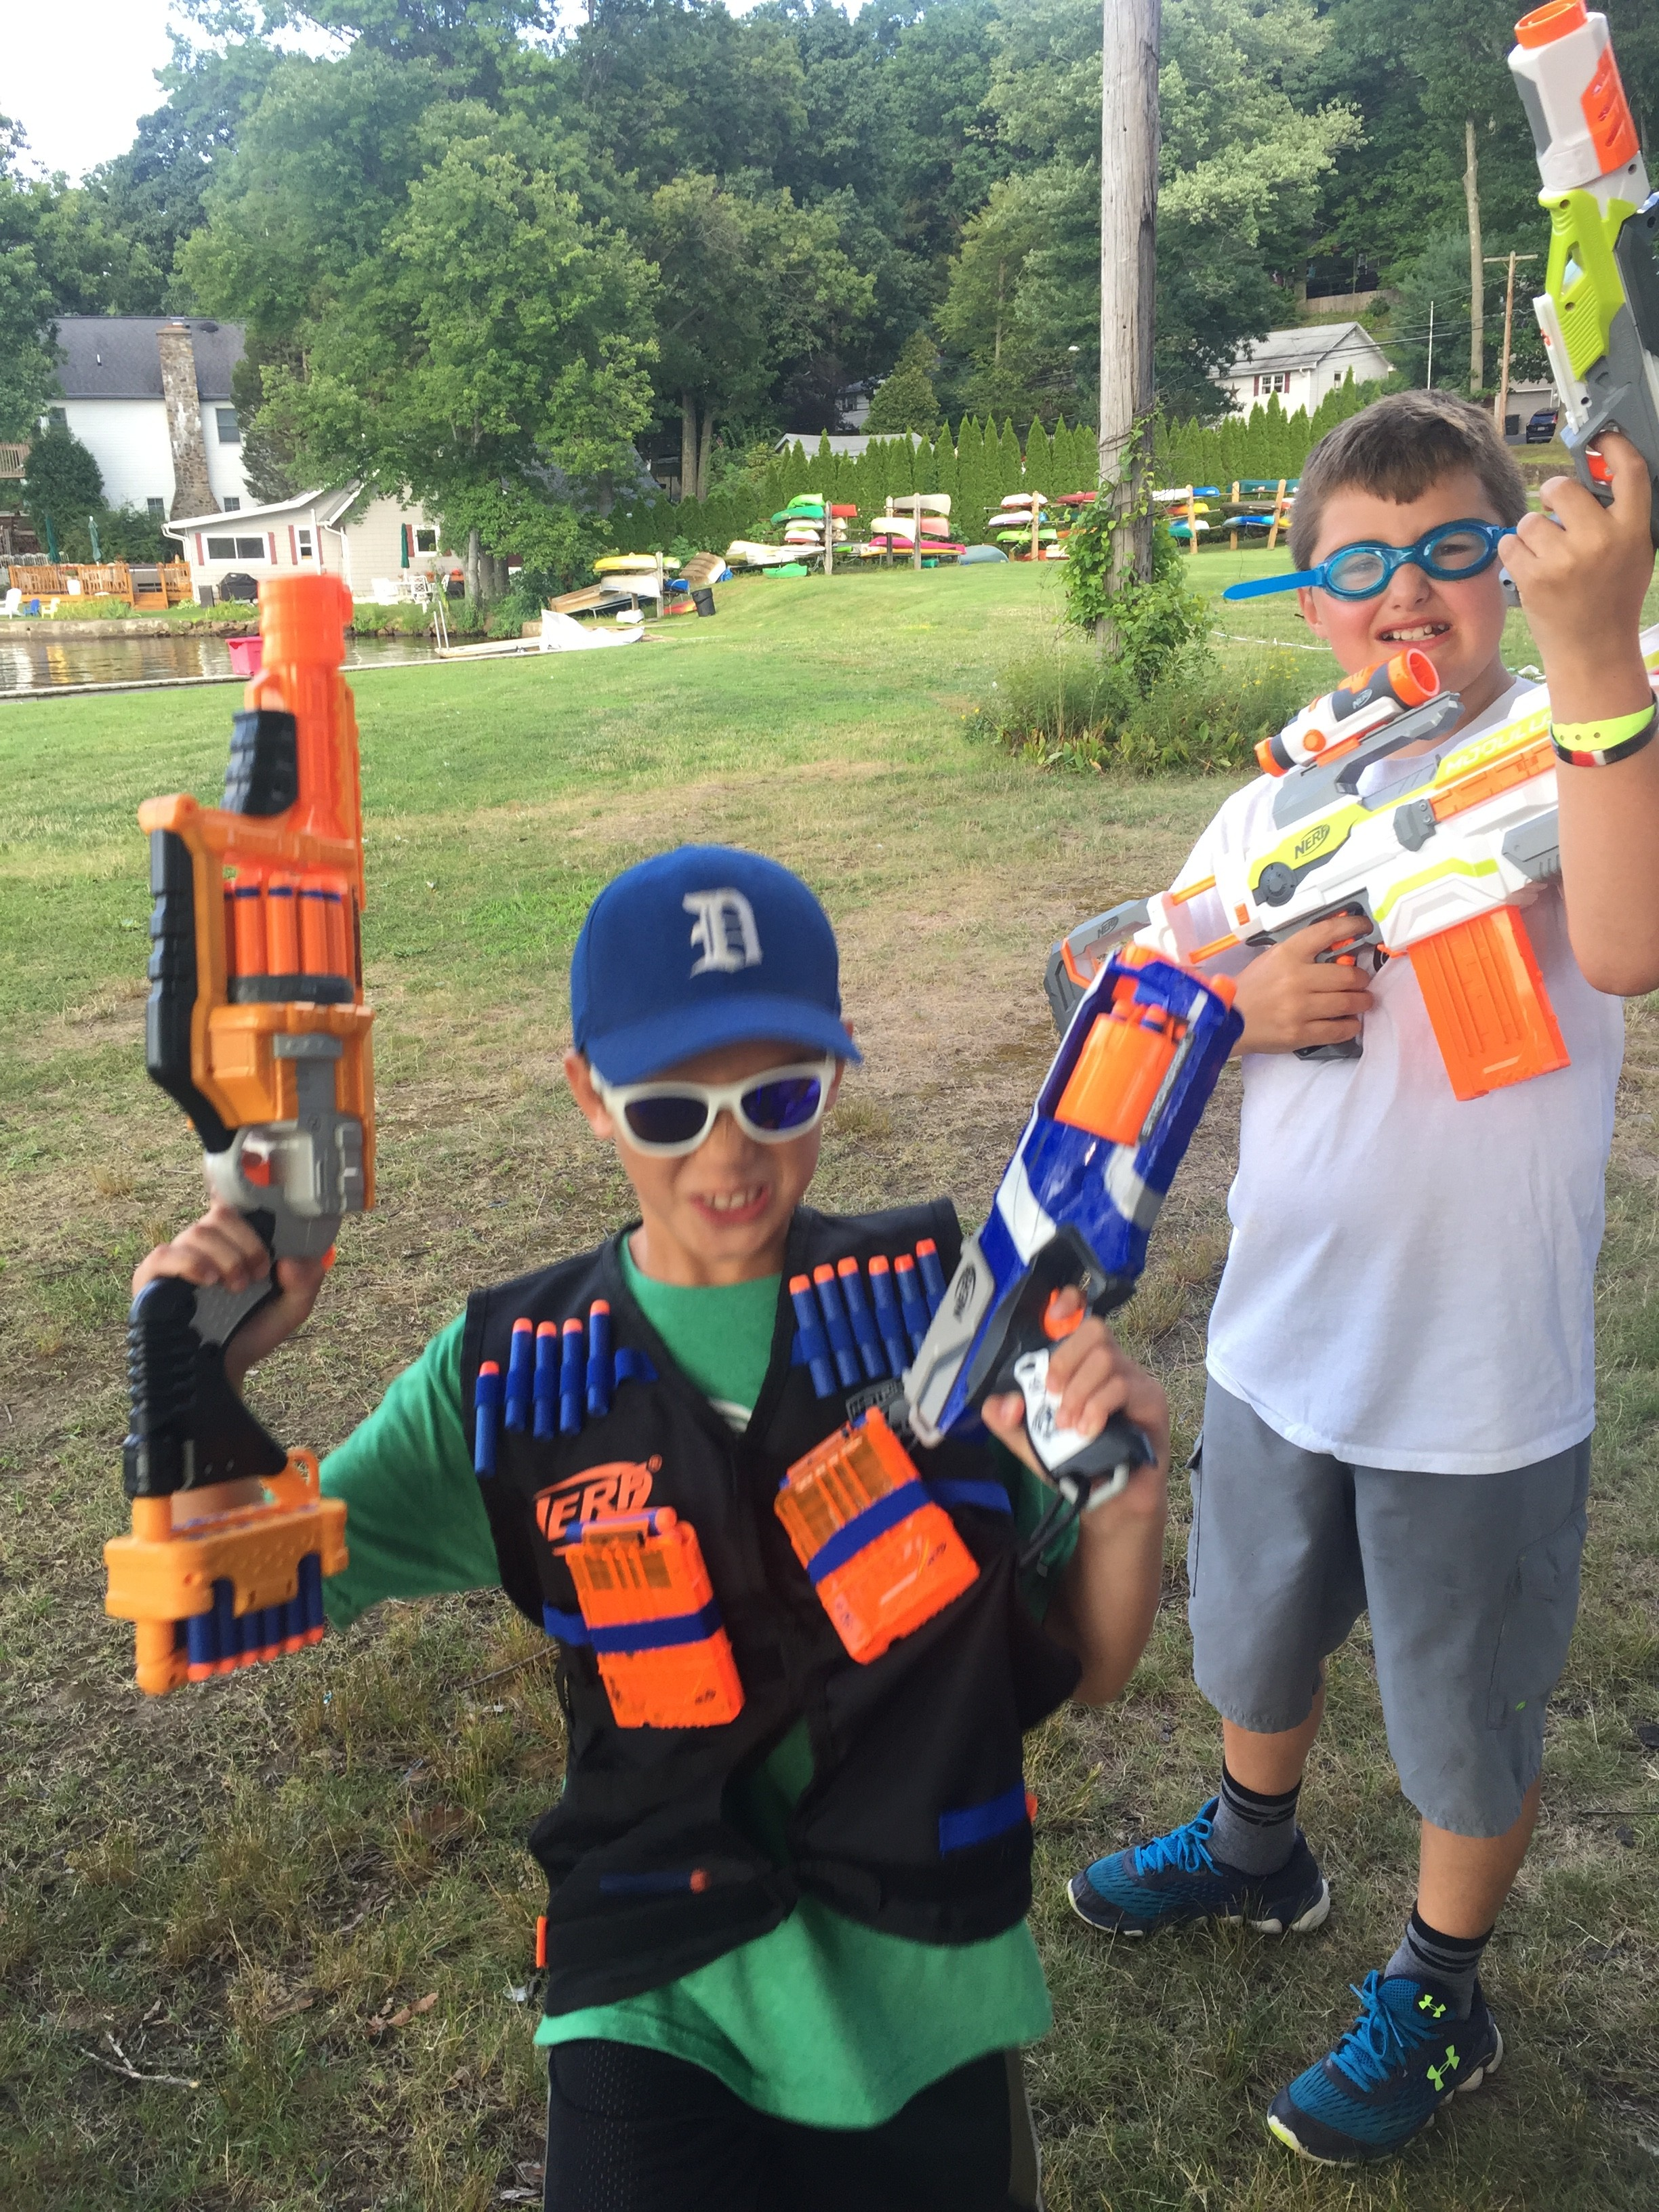 The Summer of Nerf